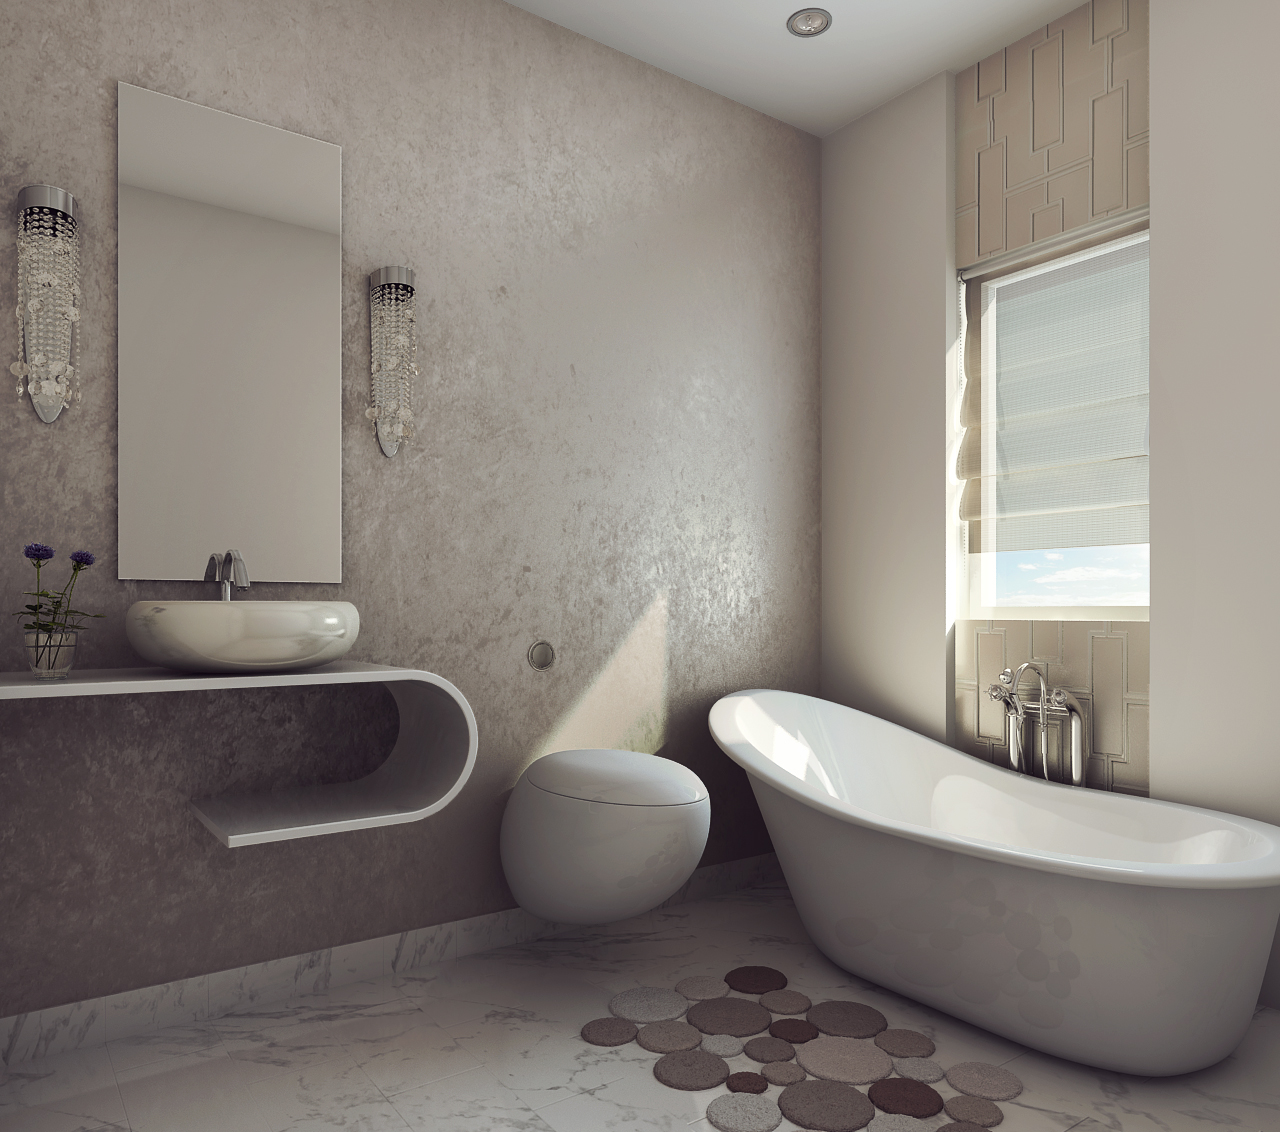 Bathroom Design 3d Model : Modern earthy design bath room free d model max